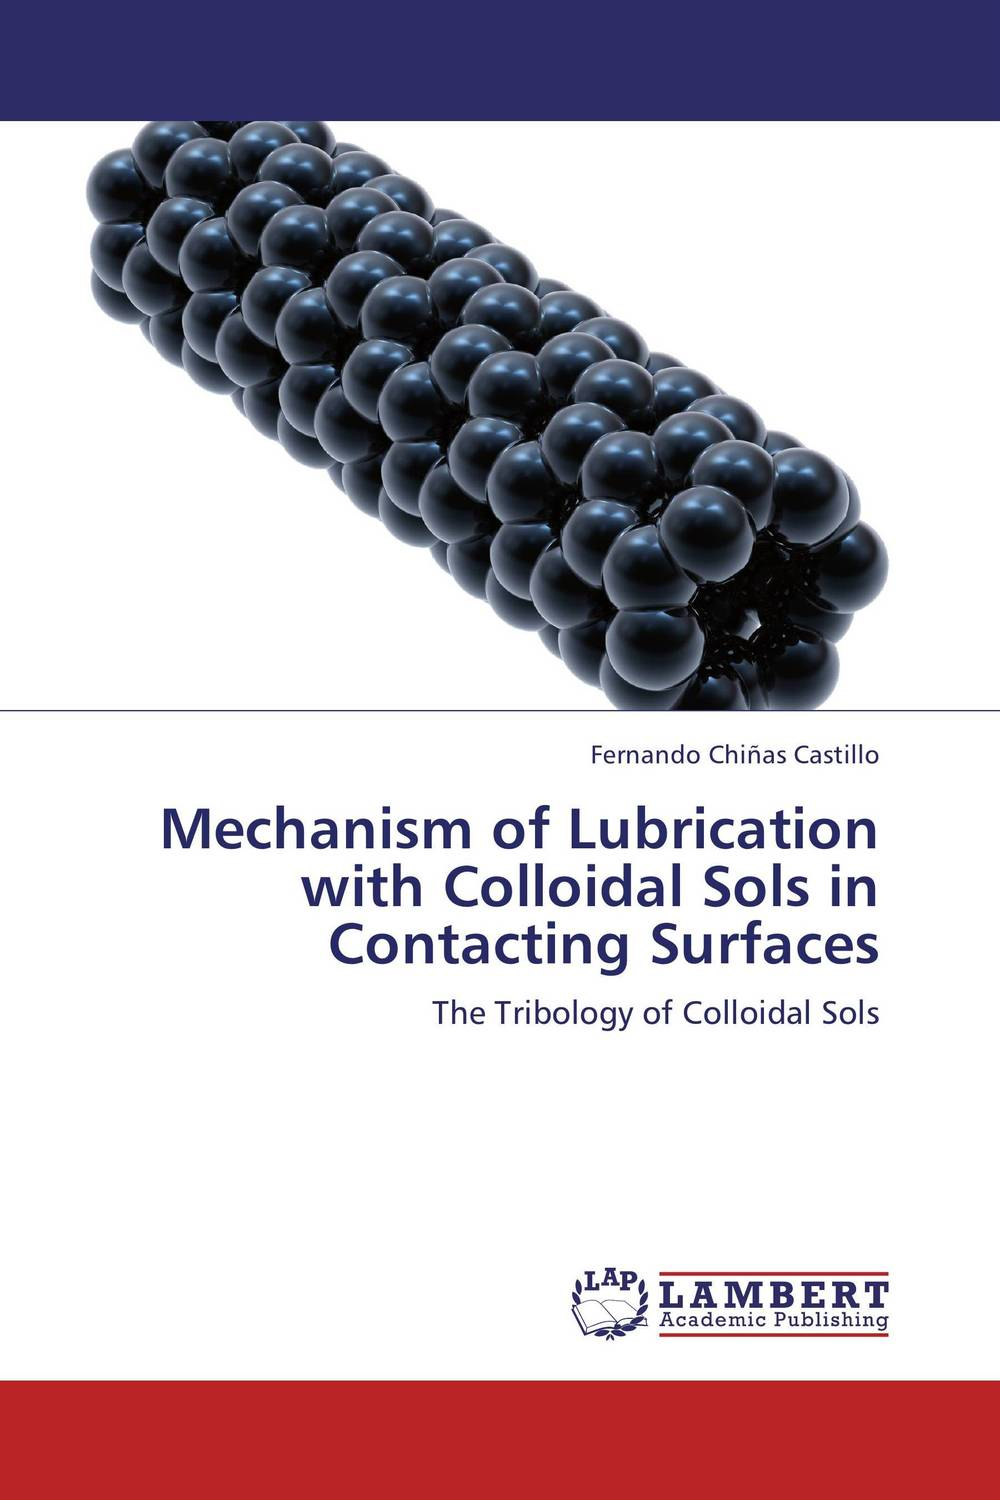 Mechanism of Lubrication with Colloidal Sols in Contacting Surfaces the role of evaluation as a mechanism for advancing principal practice